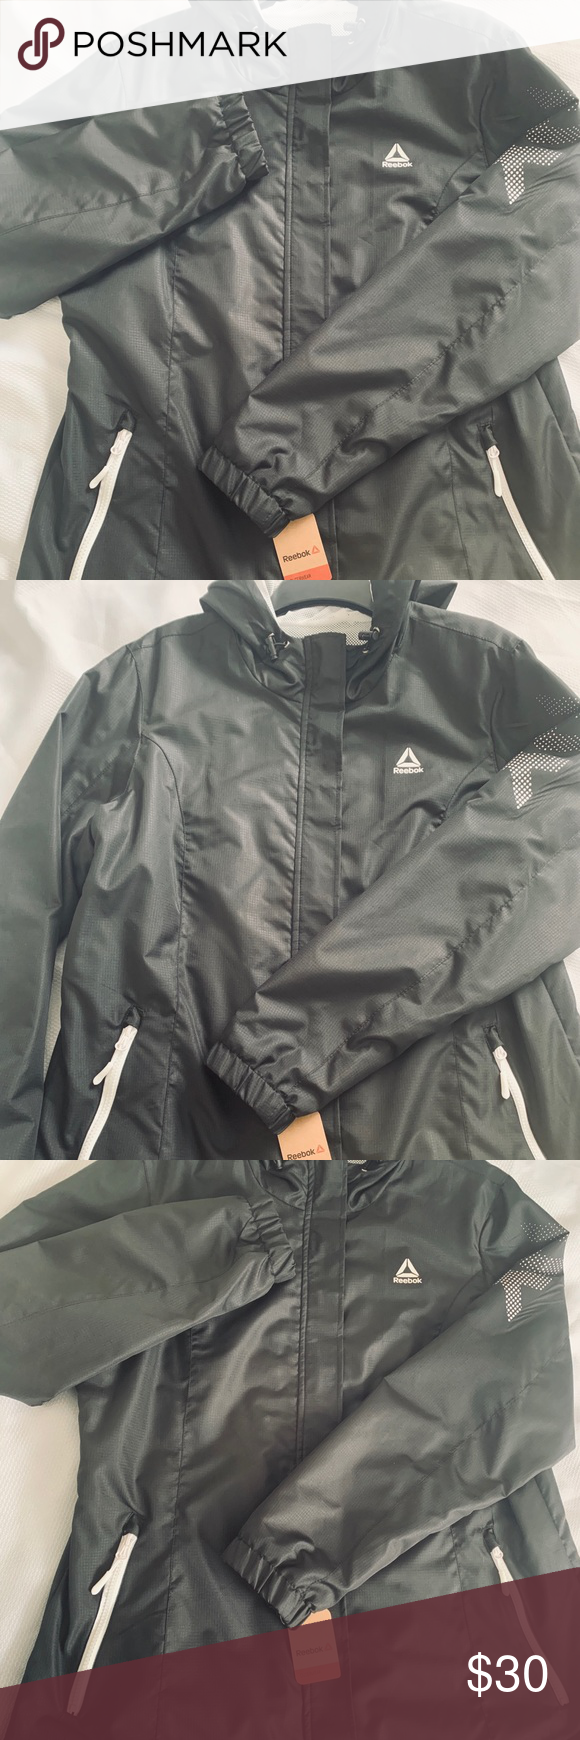 Reebok Jacket Color Black Size Xl This Reebok Windbreaker Is Perfect And Light Color Black 100 Polyester Machine Washable Style Jackets Black Color Black [ 1740 x 580 Pixel ]